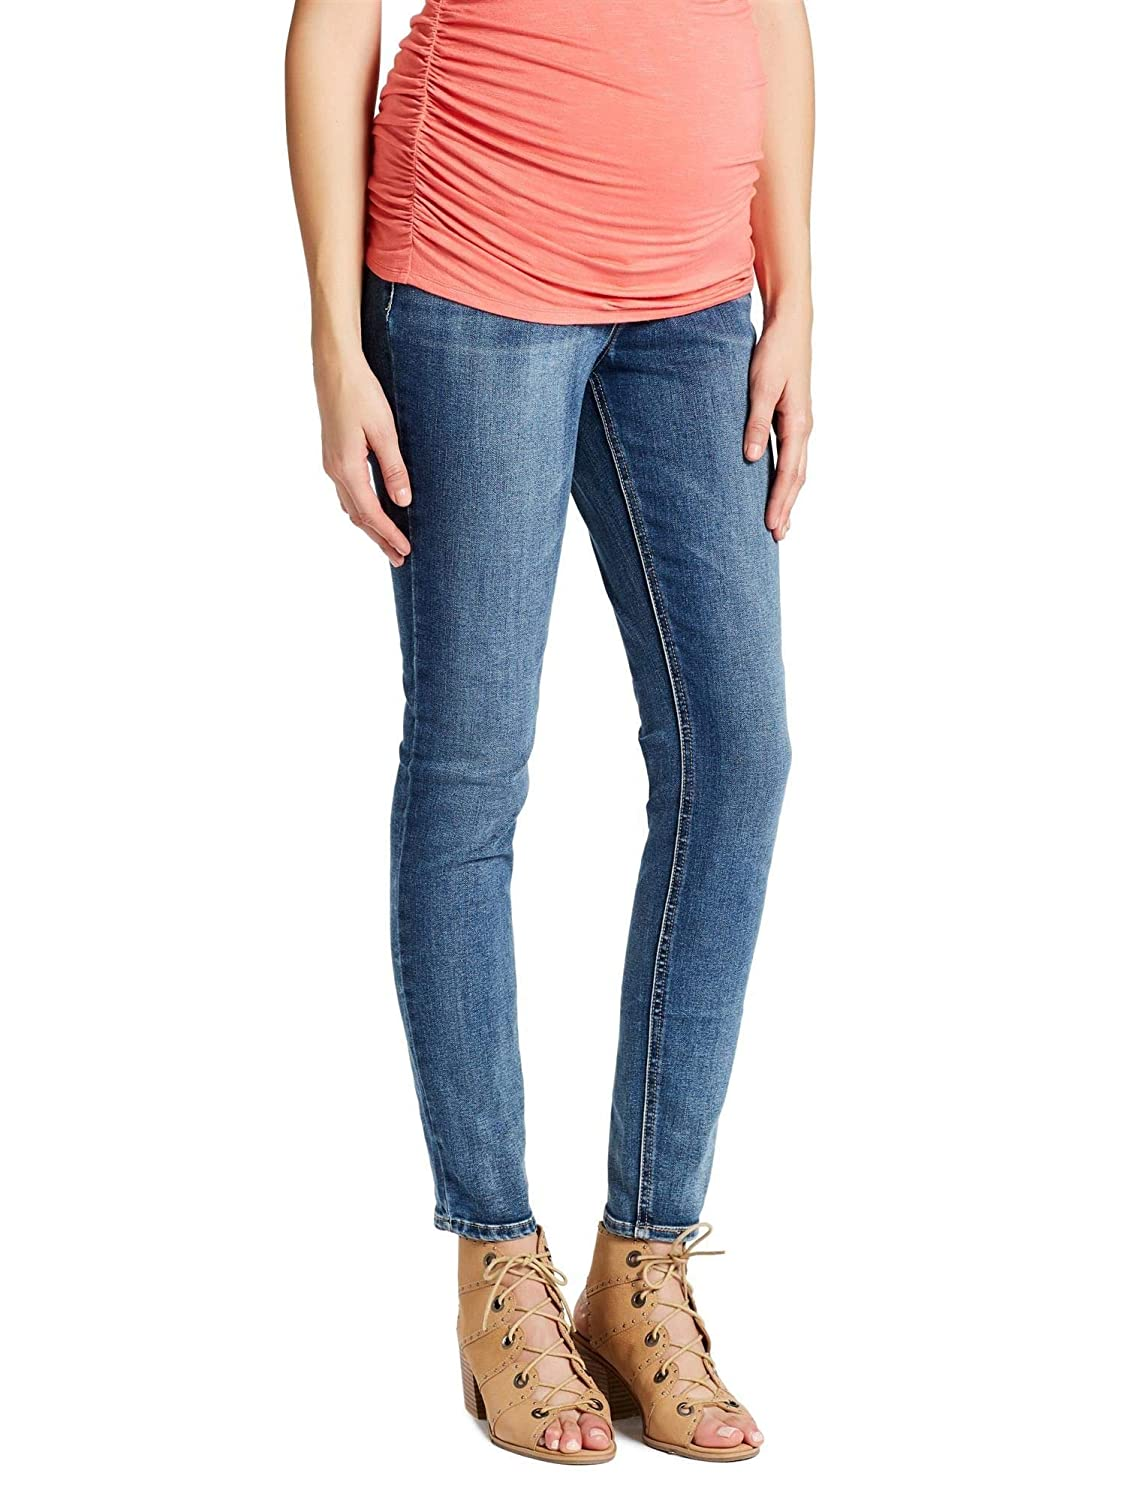 a283b855c17 Jessica Simpson Secret Fit Belly Skinny Leg Maternity Jeans at Amazon  Women s Clothing store